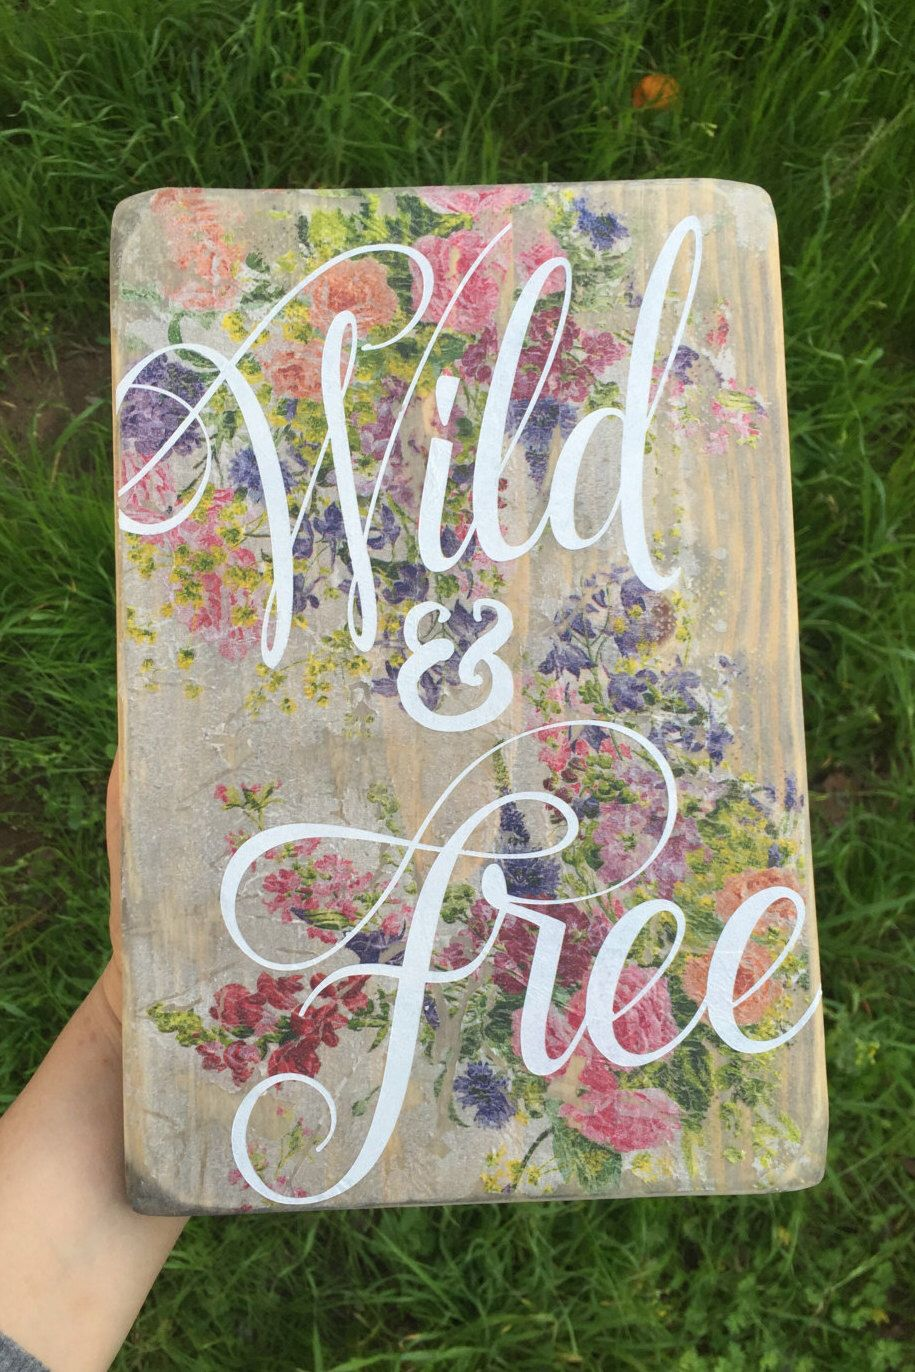 Wild & Free Wood Flower Sign by SomedayBrighter on Etsy https://www.etsy.com/listing/268498536/wild-free-wood-flower-sign